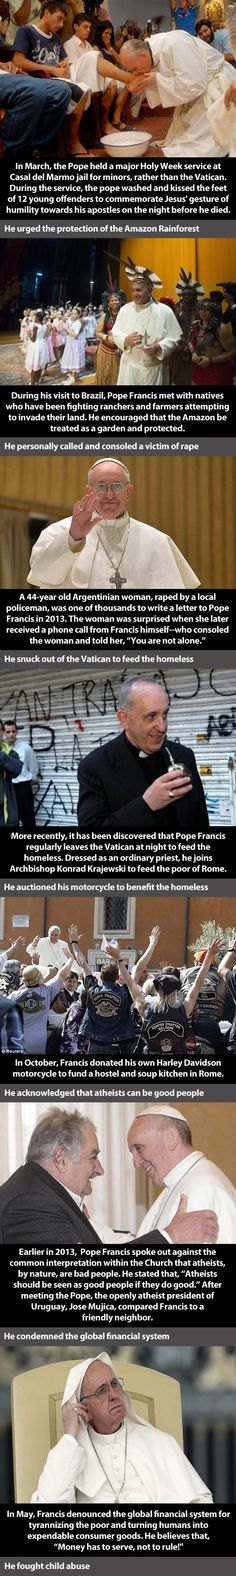 Pope Francis...